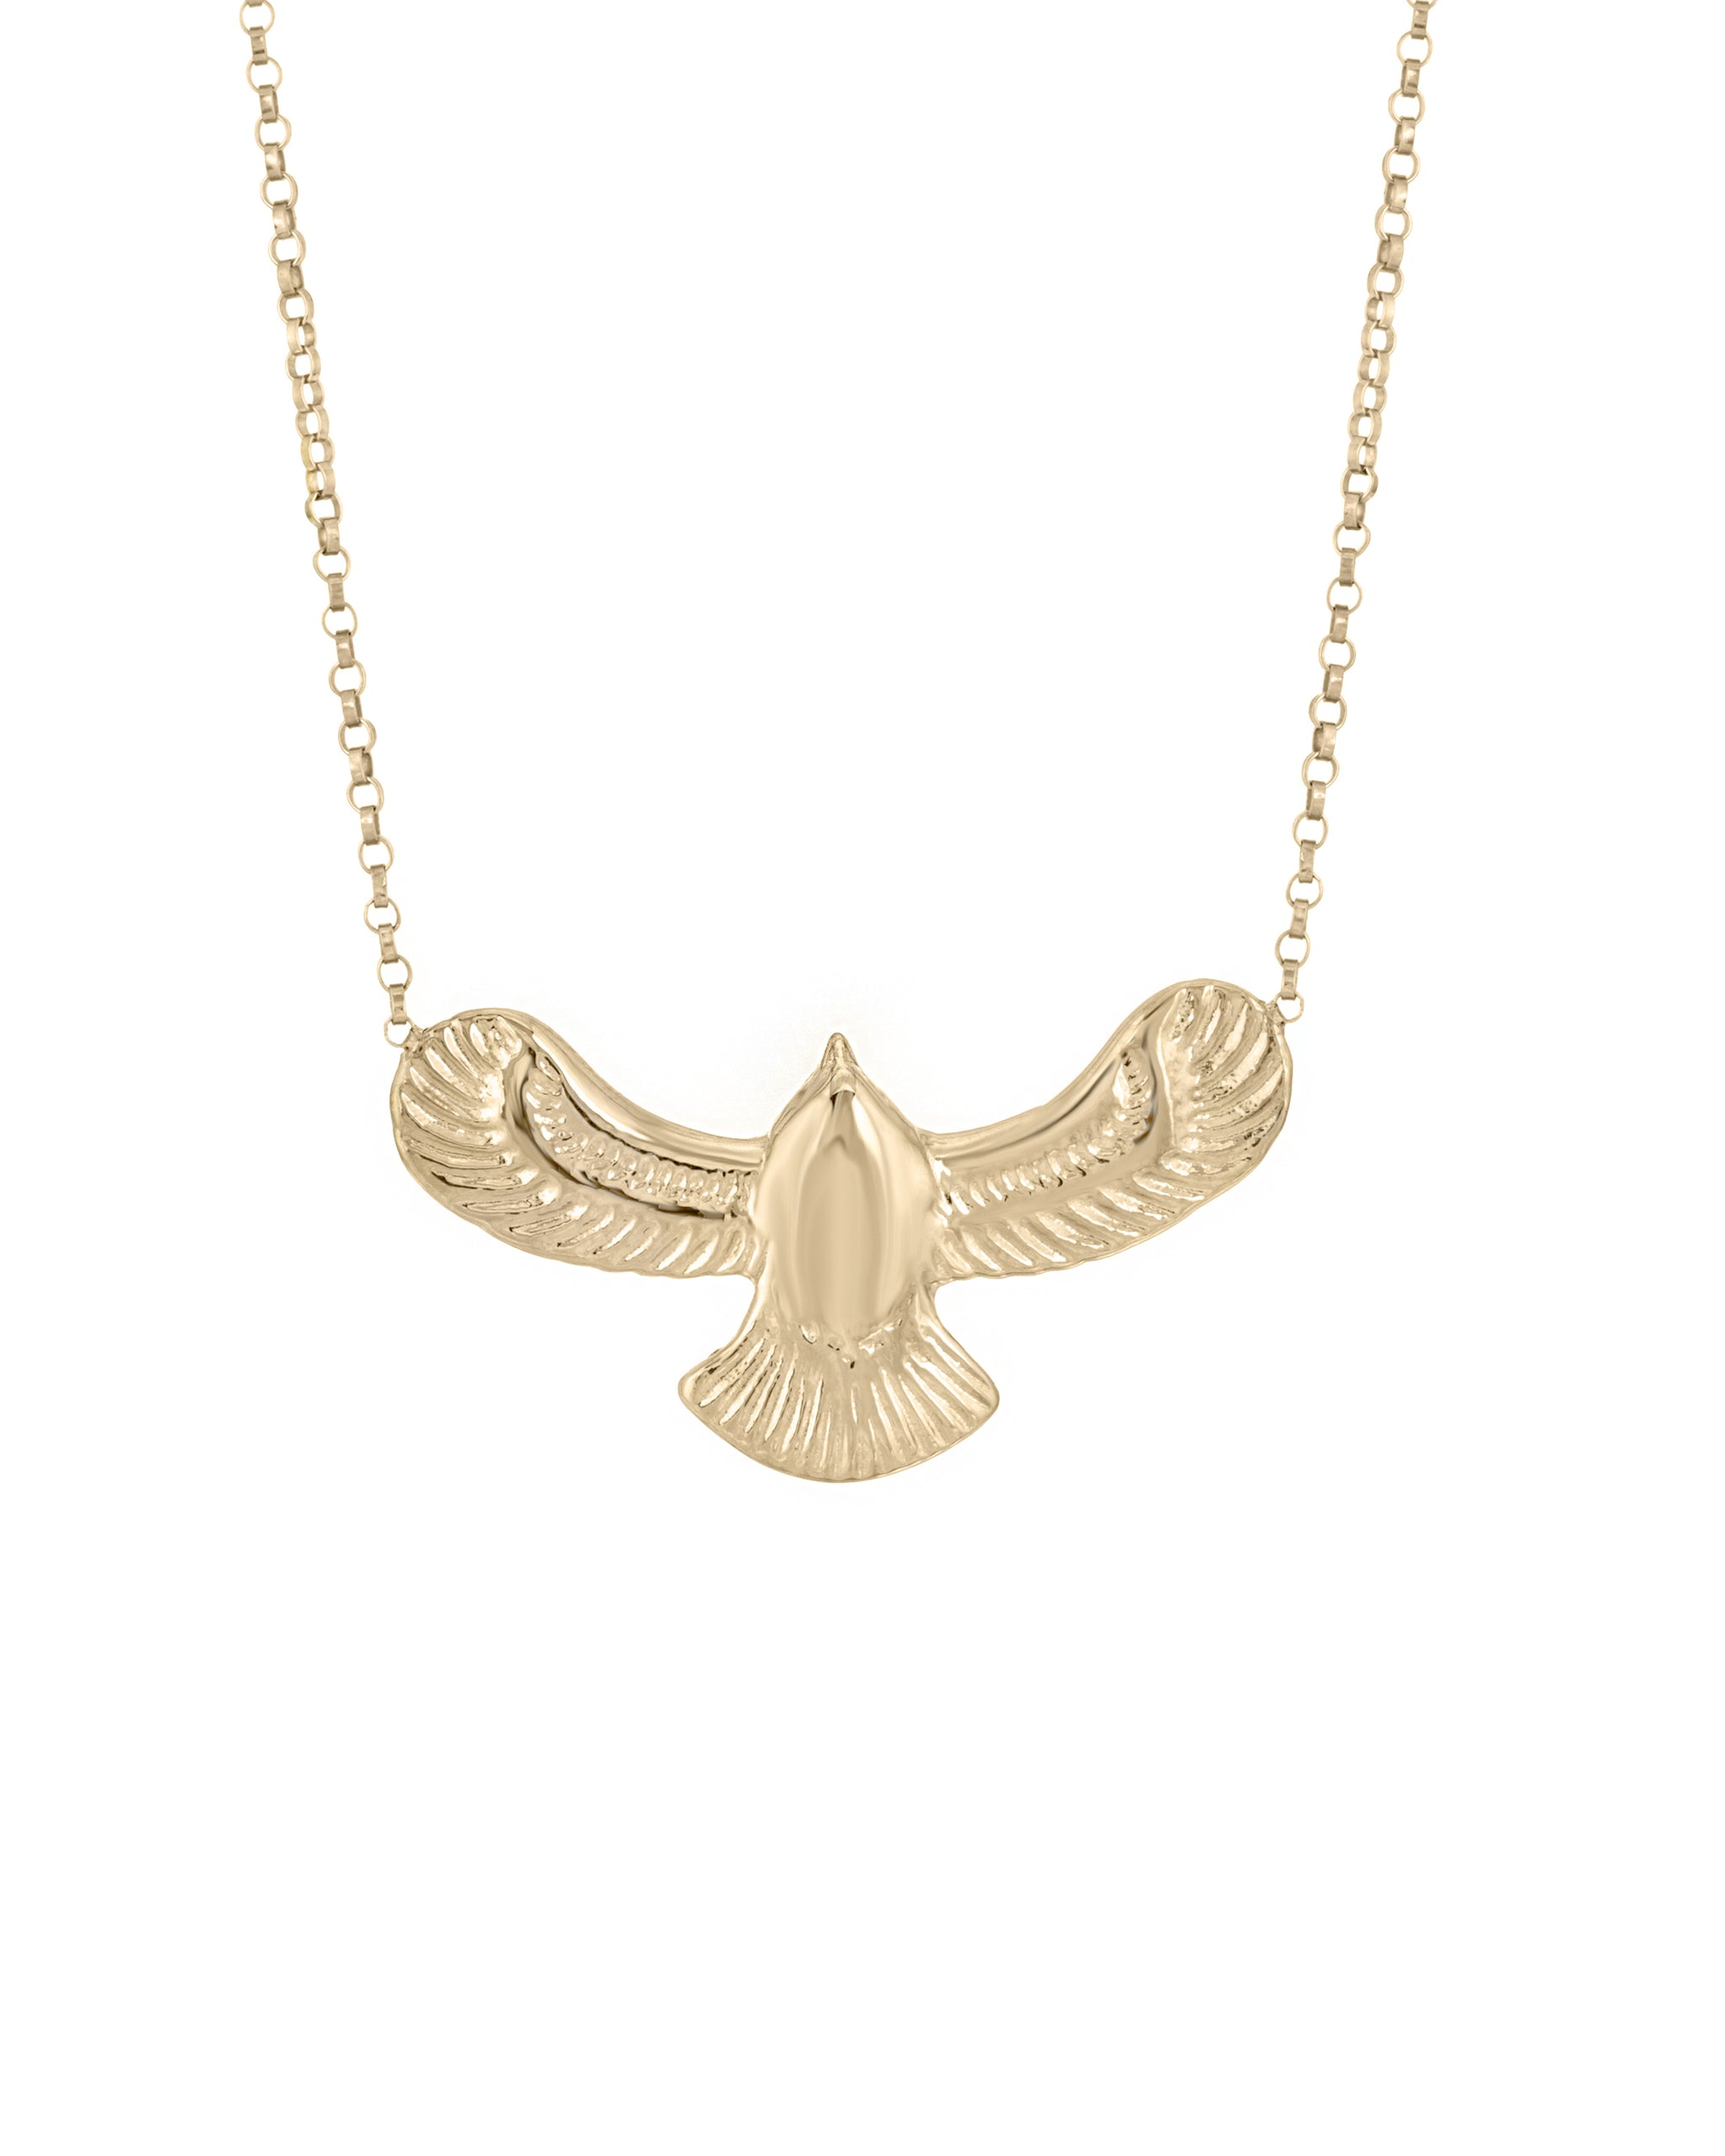 14k Yellow Gold Vermeil Fleetwood Necklace by Turquoise + Tobacco.  Gold Eagle Necklace